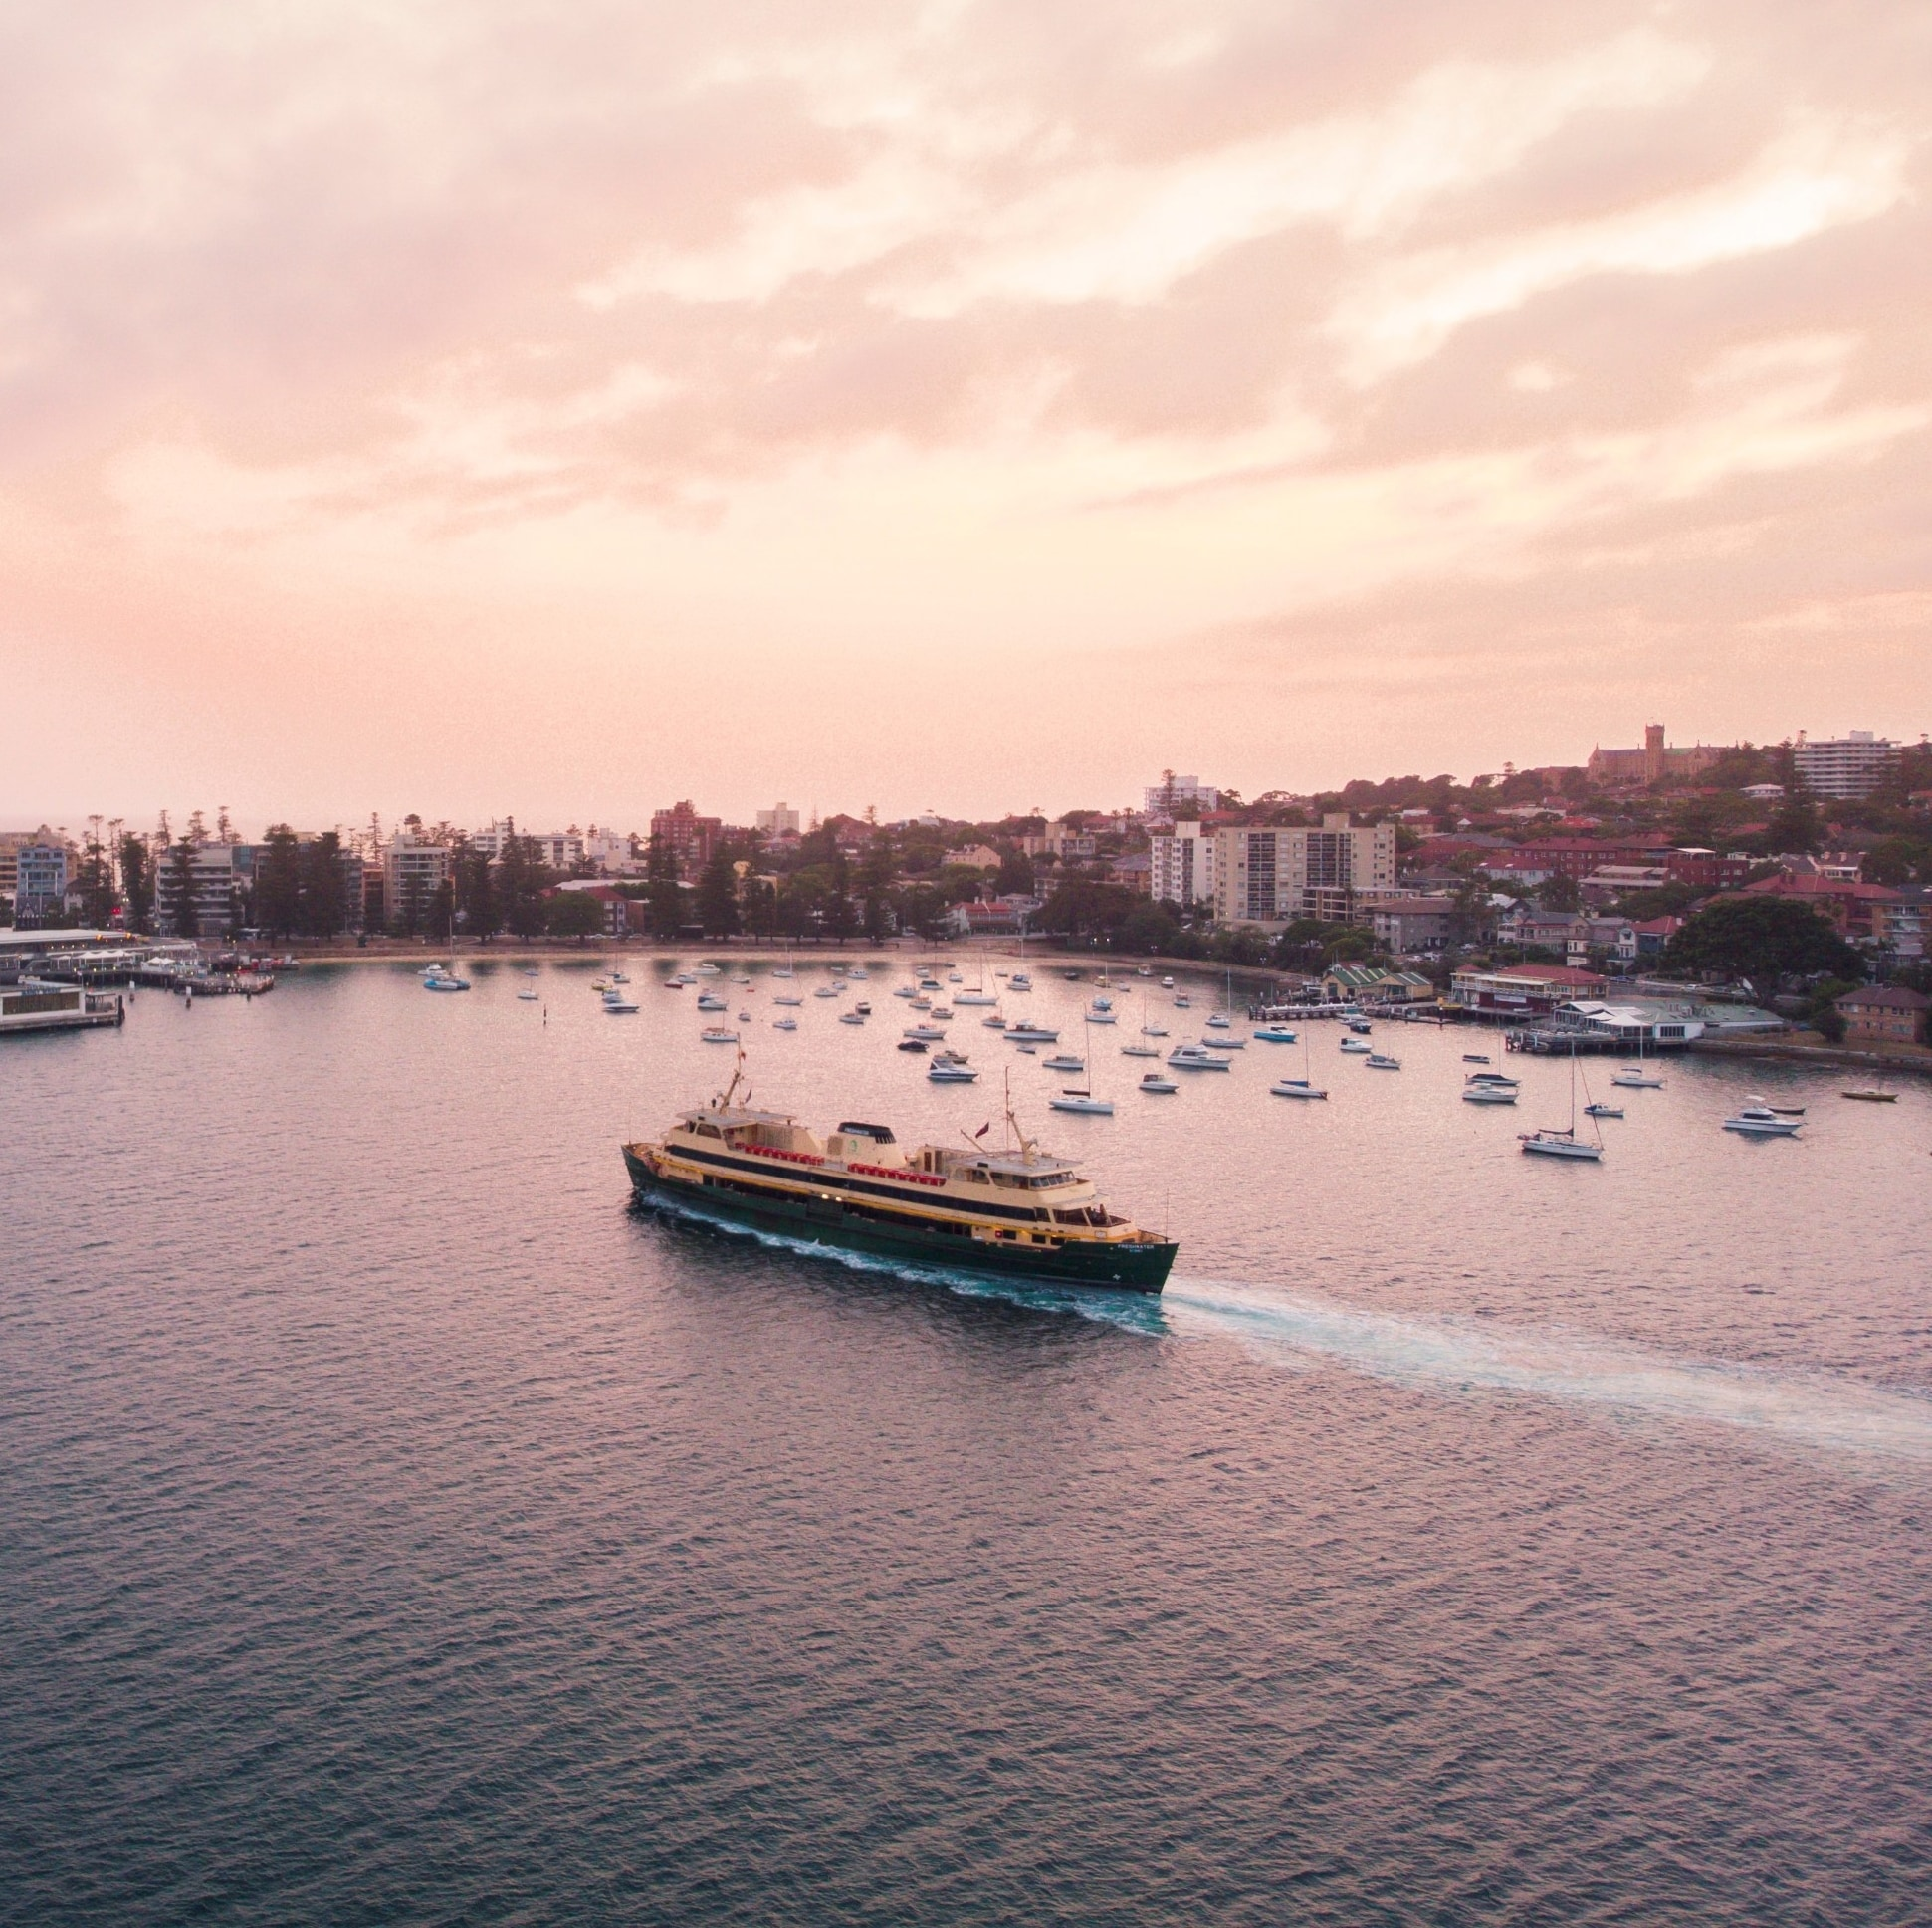 Manly Ferry, Manly, NSW © Destination NSW